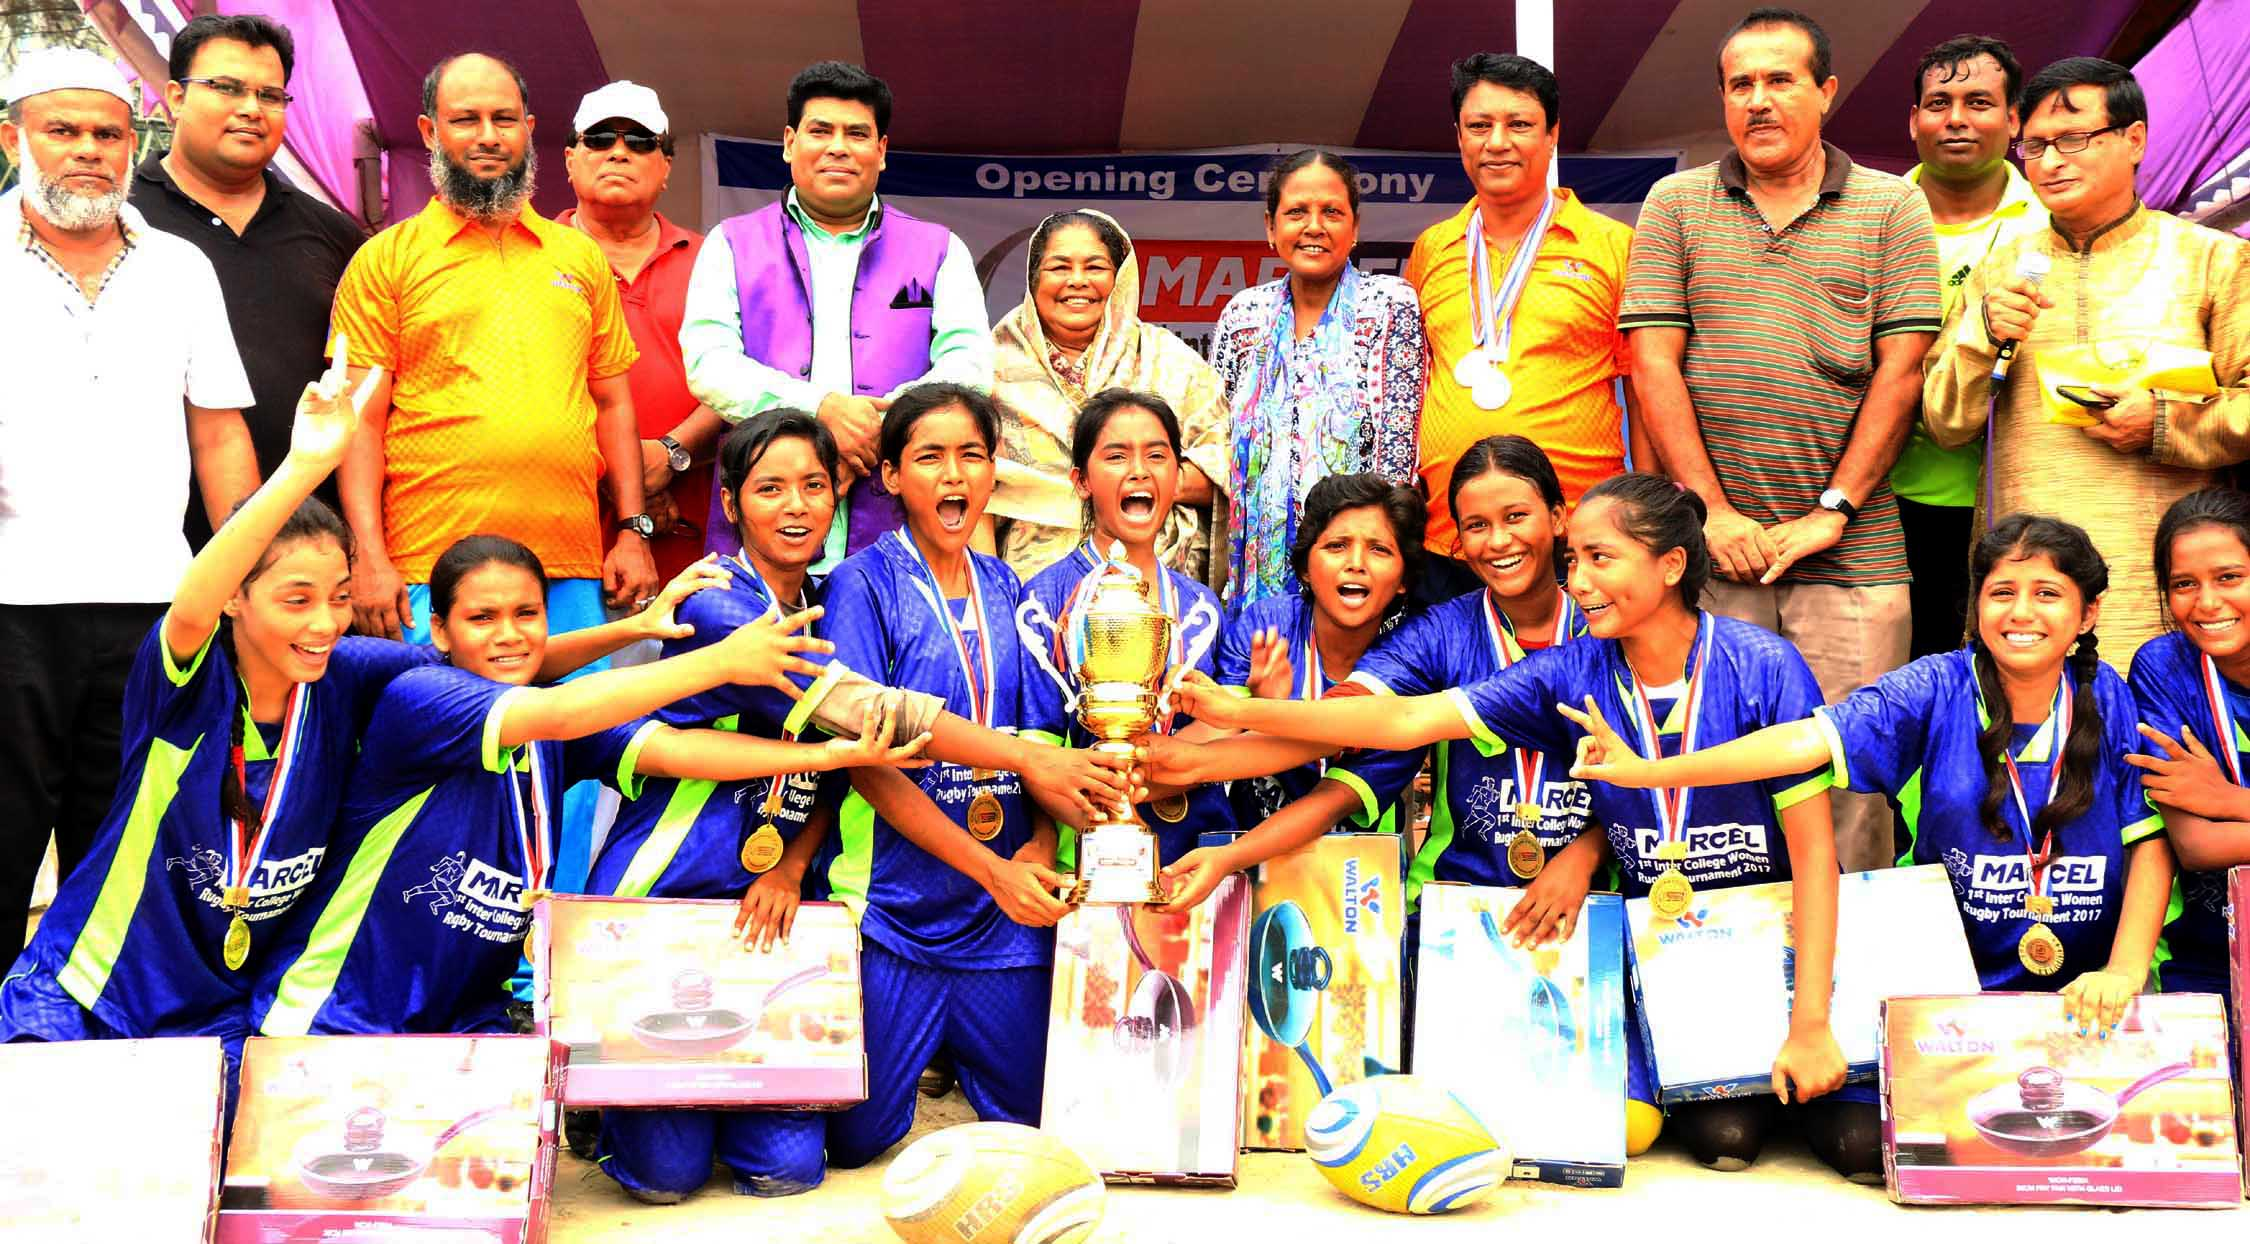 Inter-College Women's Rugby Narayanganj College become champions